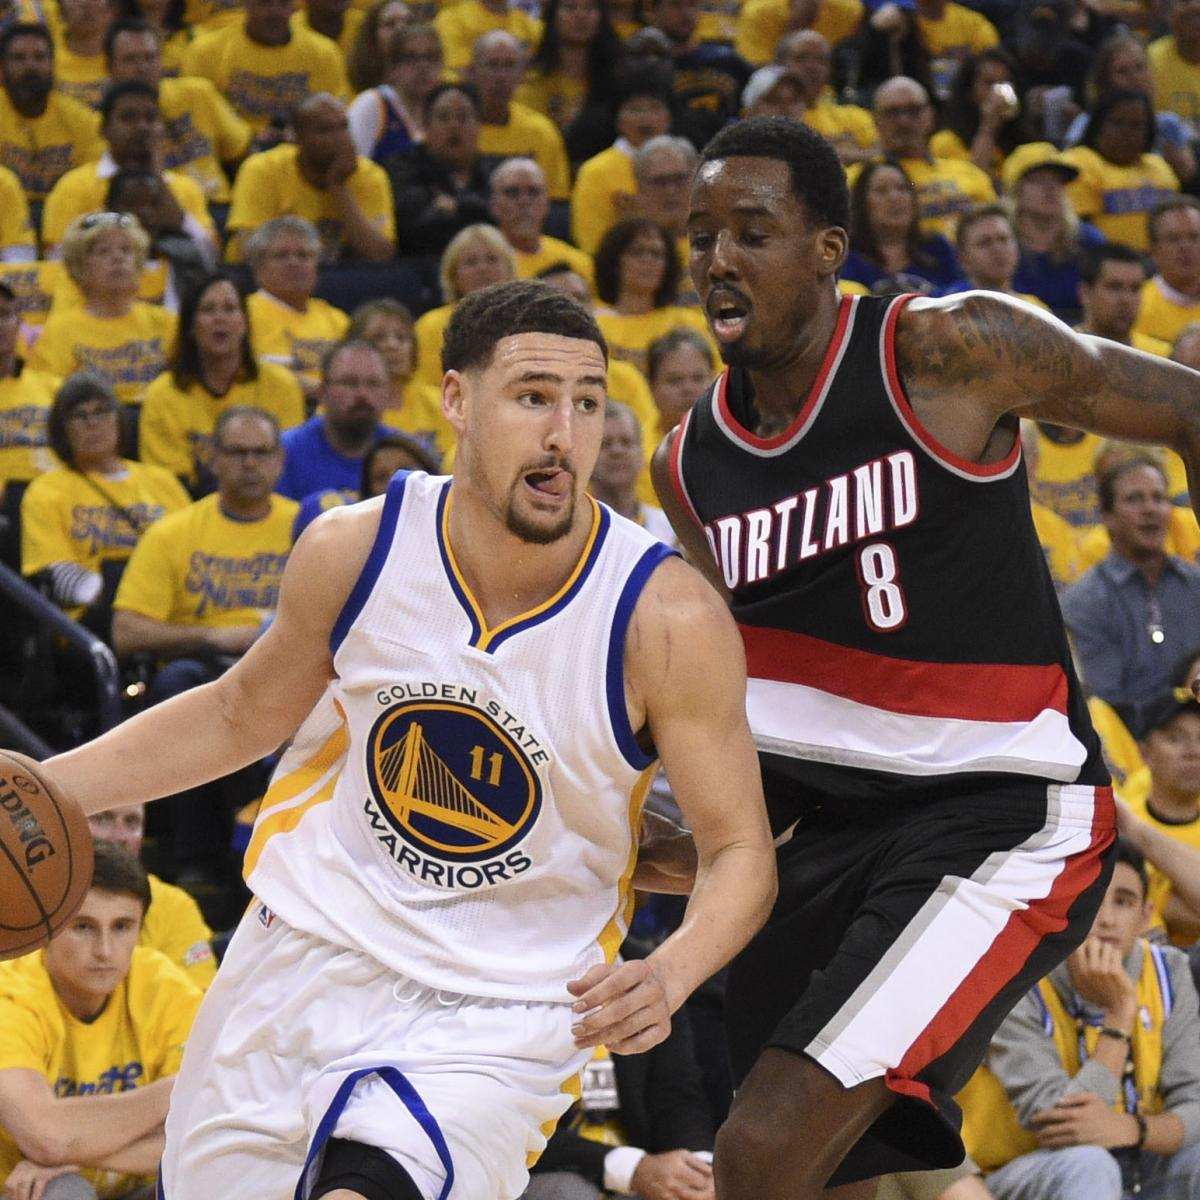 Blazers Game 3: Warriors Vs Trail Blazers: Game 3 Video Highlights, Recap